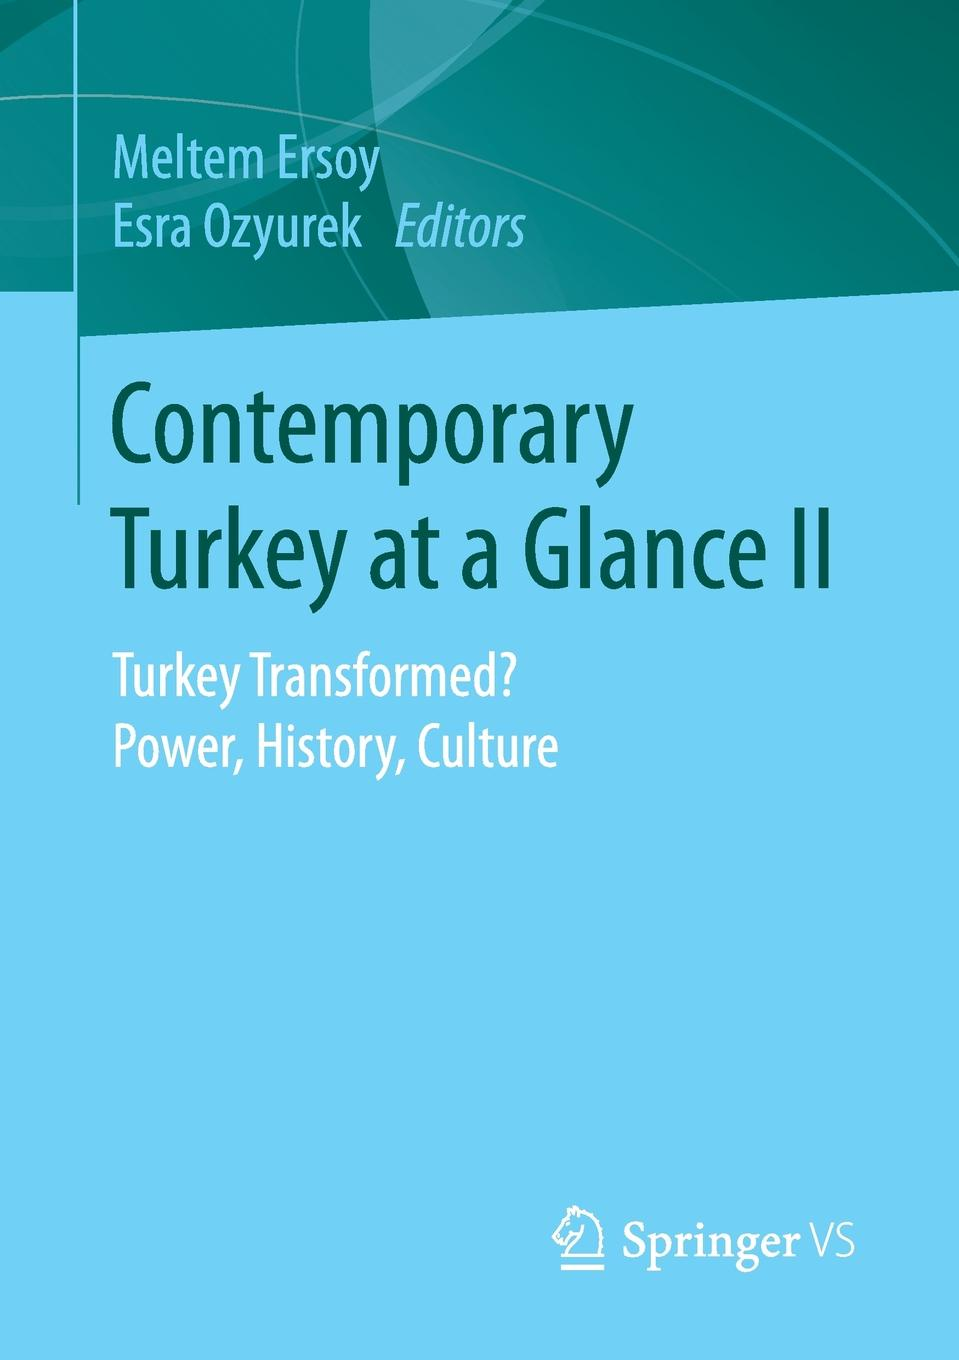 Contemporary Turkey at a Glance II. Turkey Transformed? Power, History, Culture